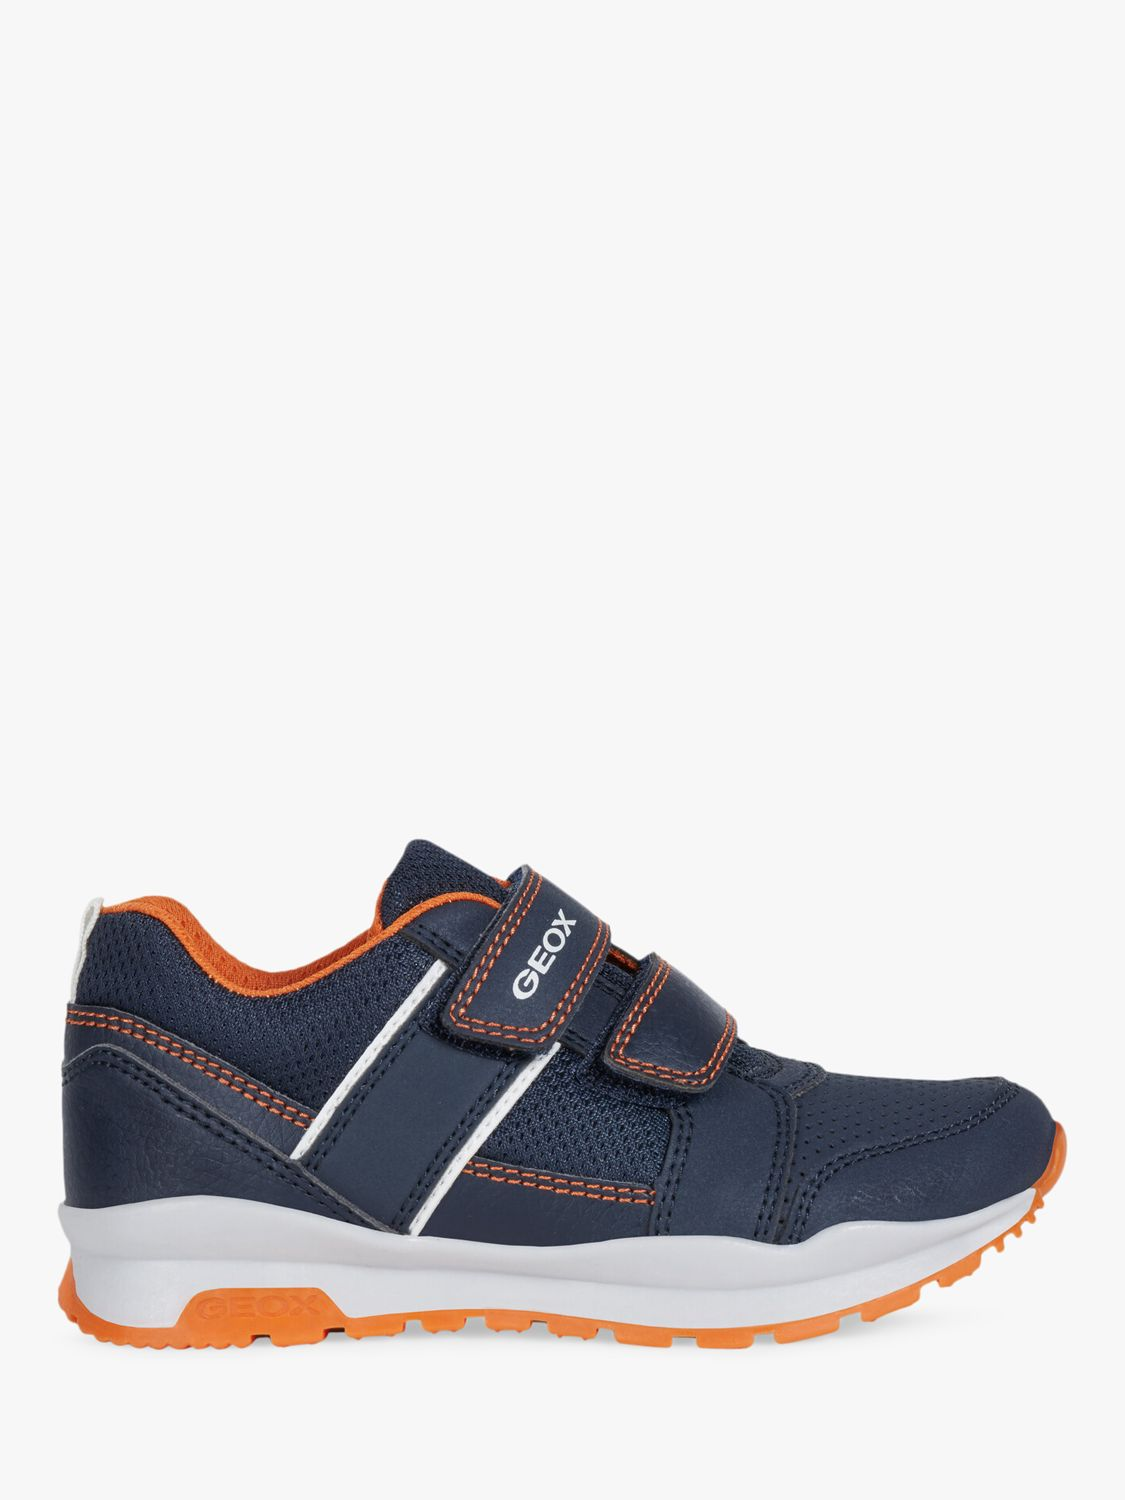 Geox Geox Children's Coridan Riptape Trainers, Navy/Orange